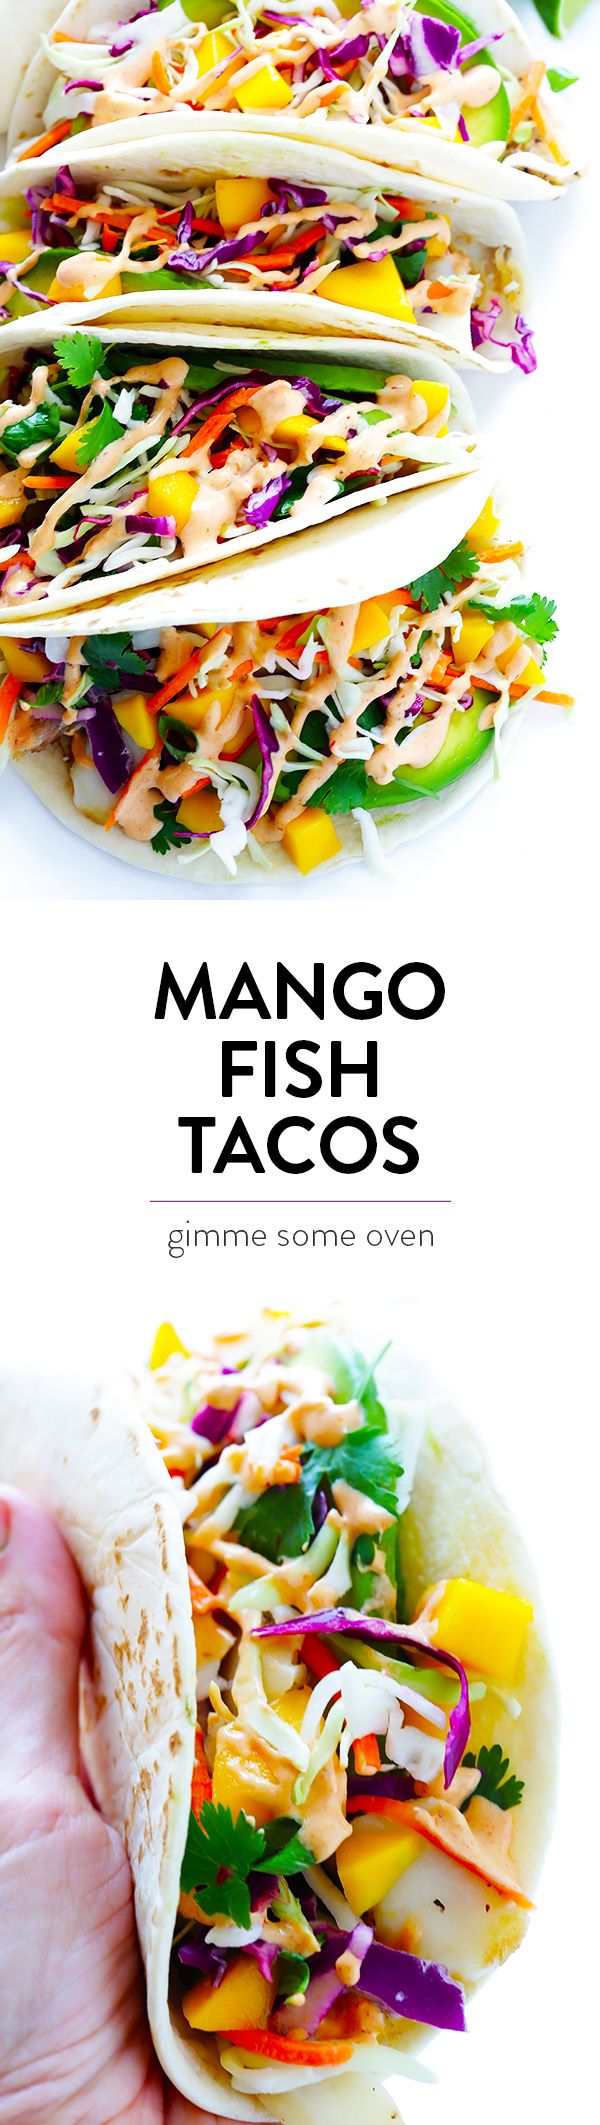 Mango Chipotle Fish Tacos Recipe Food Recipes Food Mexican Food Recipes